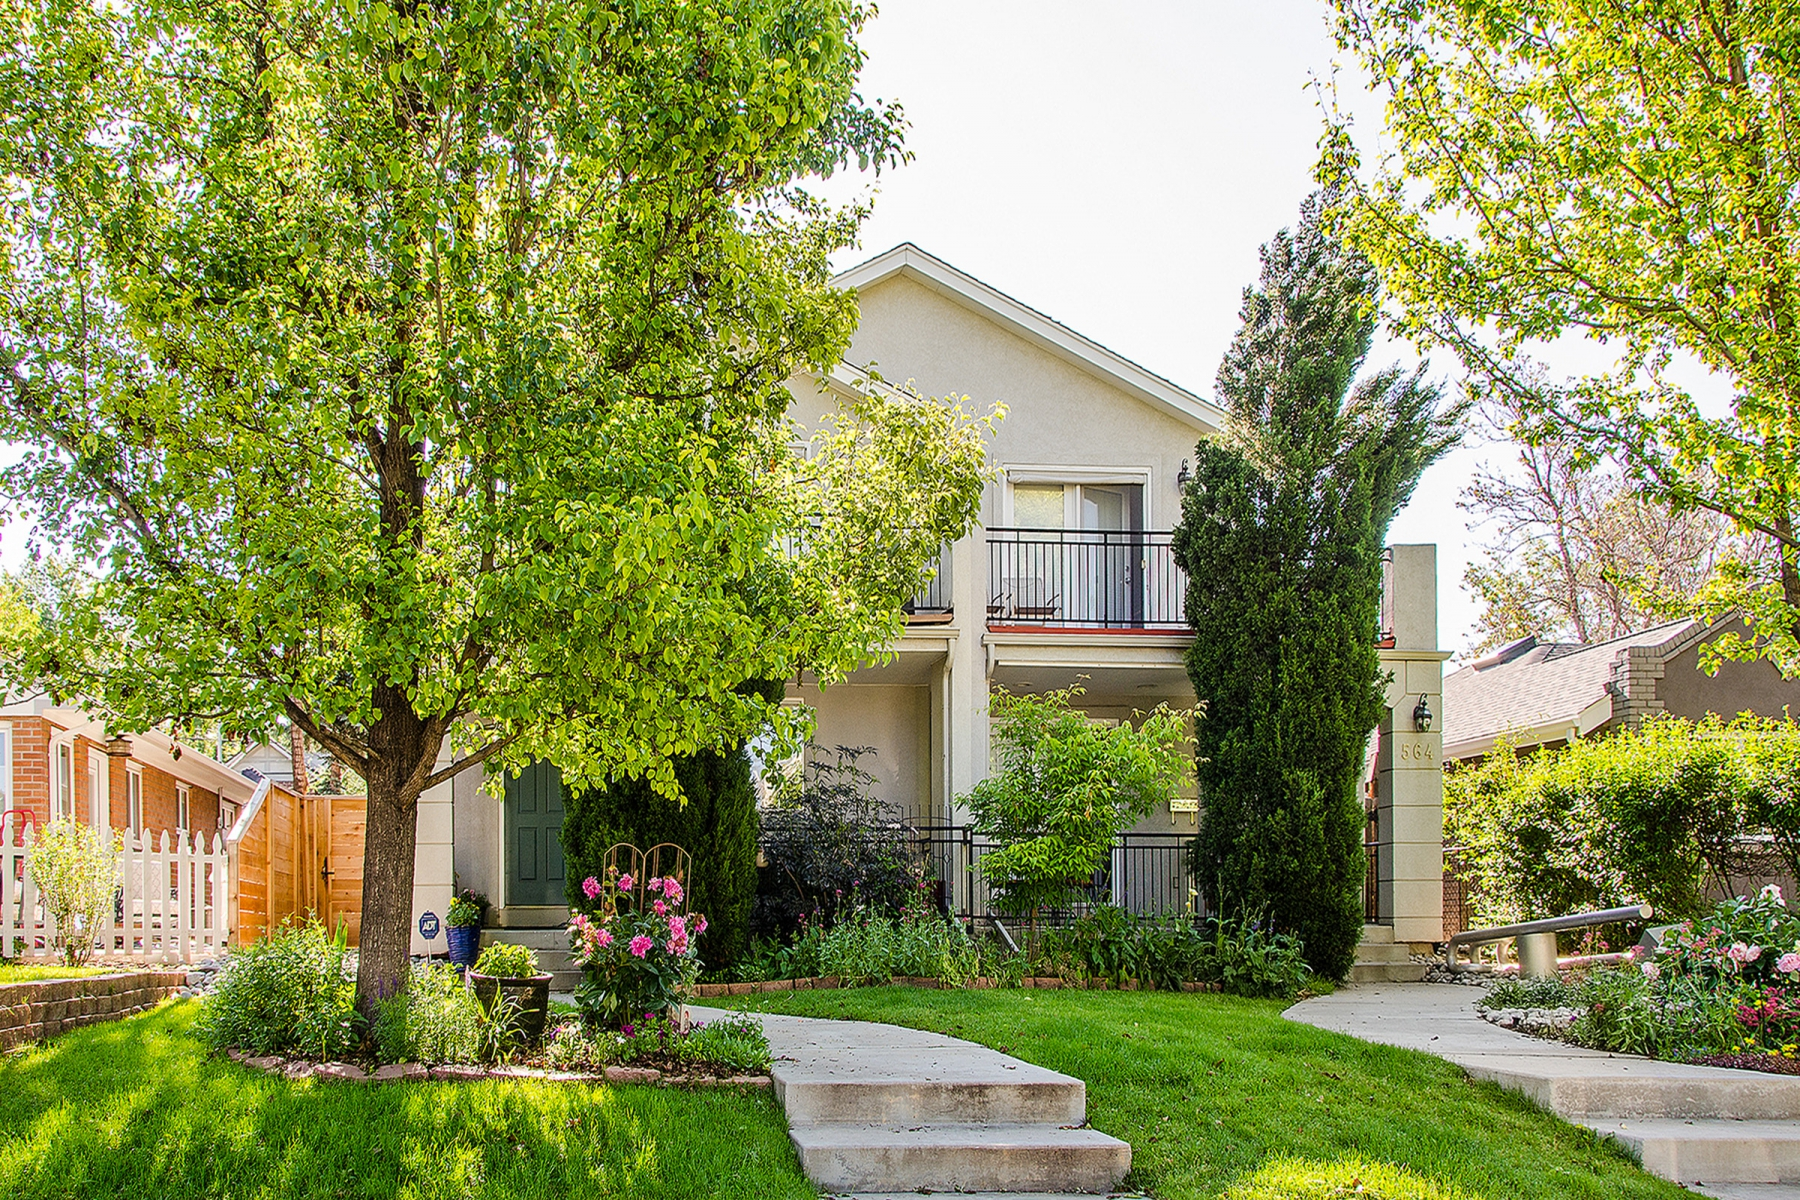 Townhouse for Sale at North Country Club Updated Townhouse 566 Humboldt Street Denver, Colorado 80218 United States